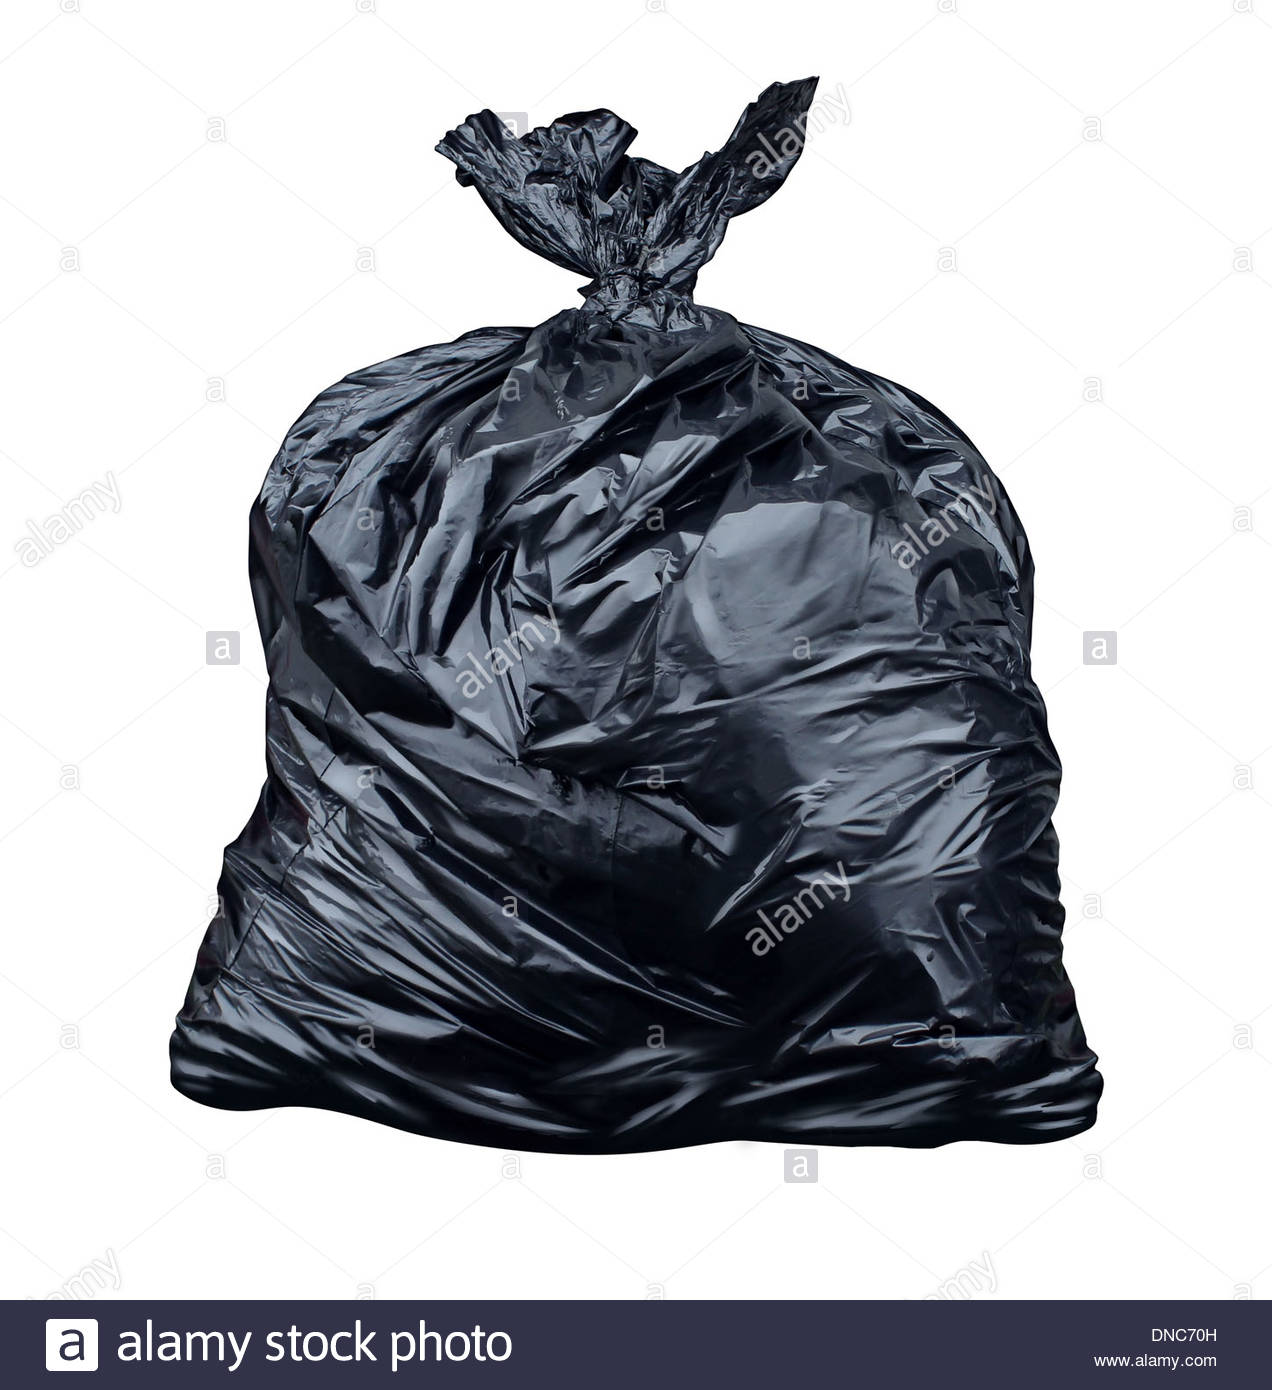 1272x1390 Garbage Bag Isolated On A White Background As A Symbol Of Waste